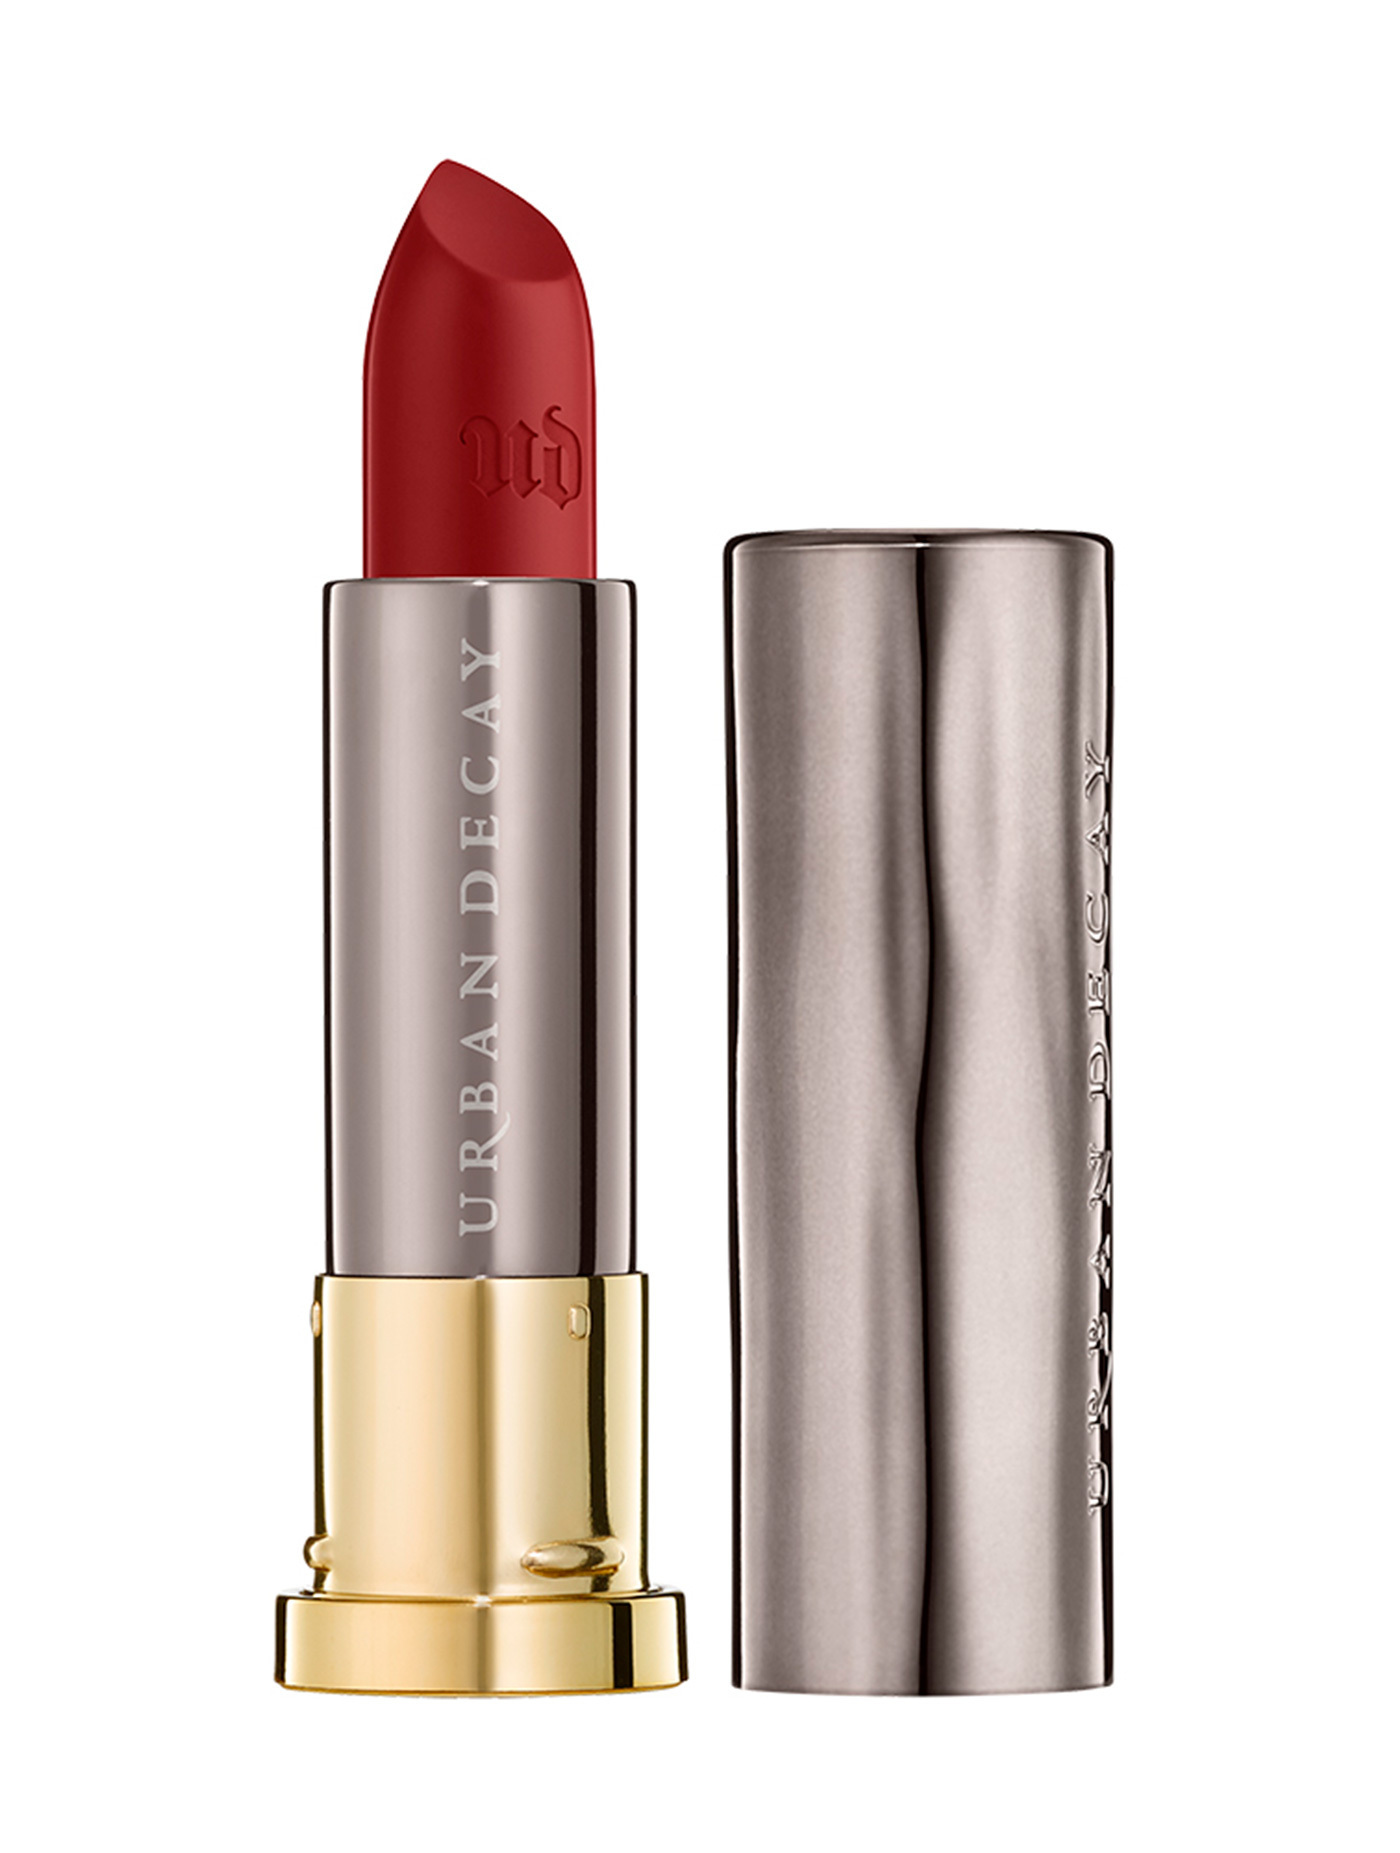 URBAN DECAY Vice Lipstick #Bad Blood 送料無料 (追跡有り)